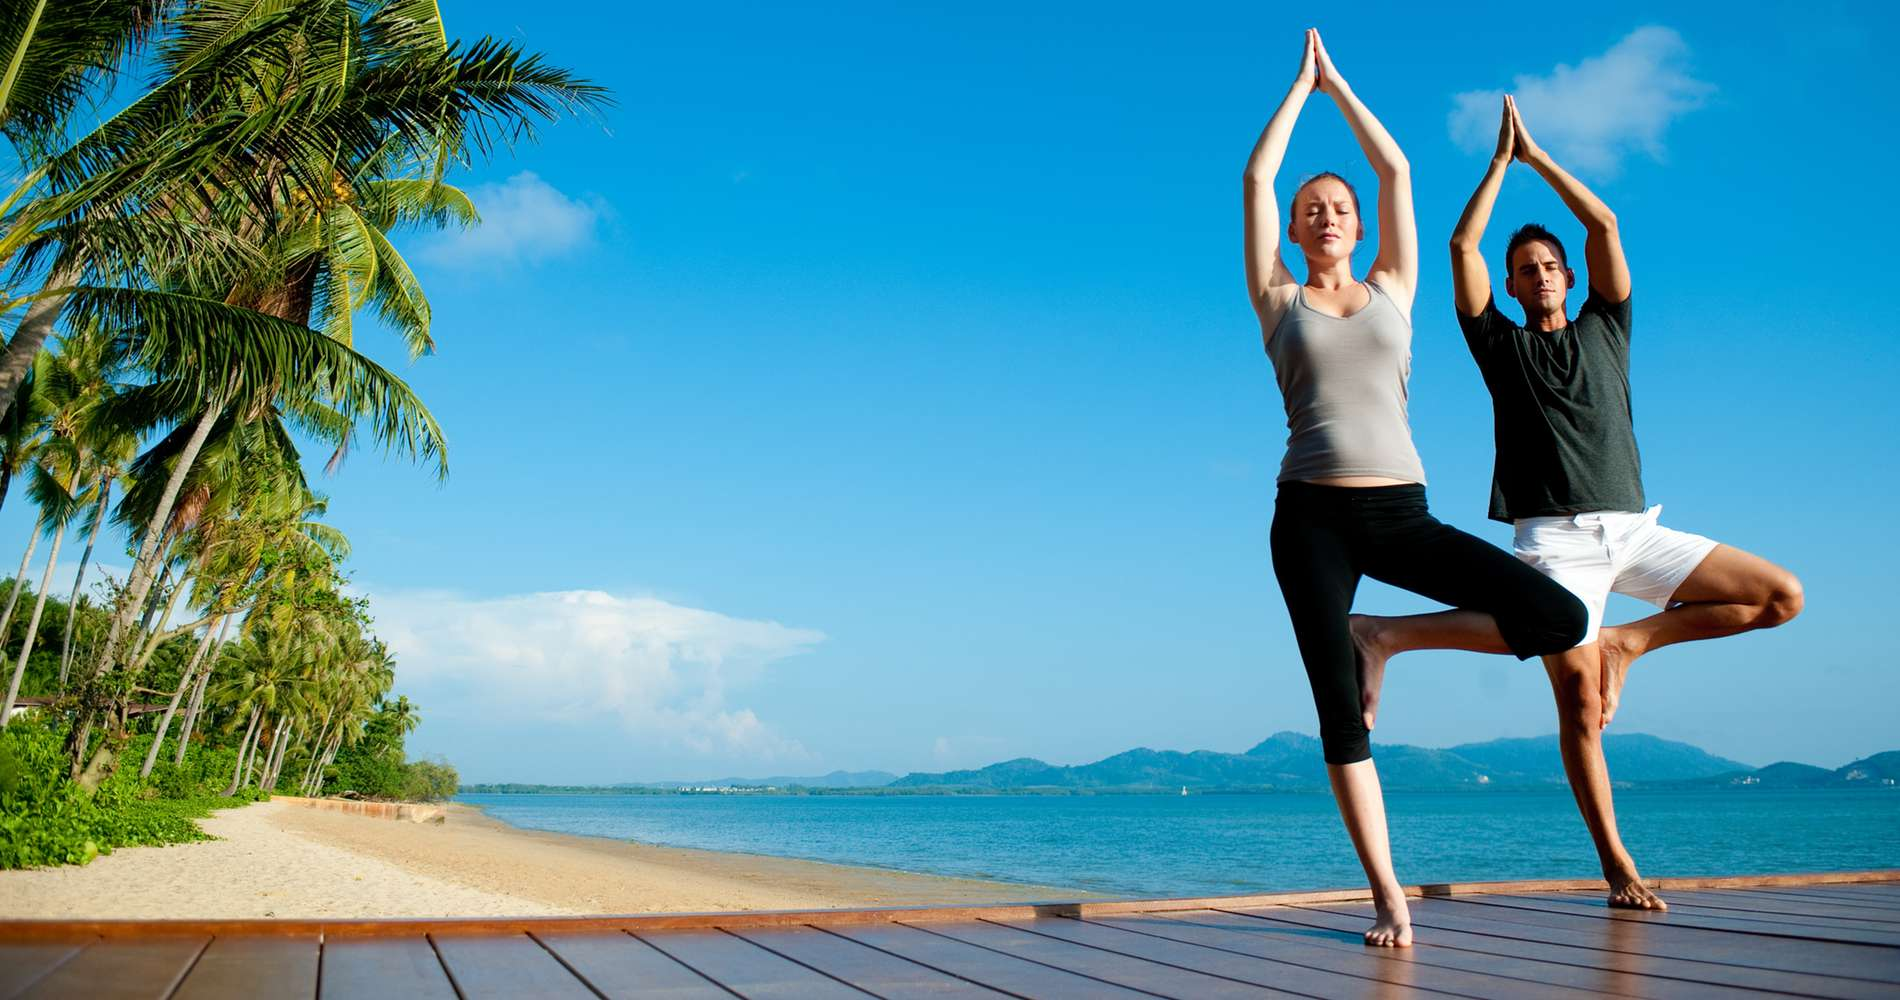 How To Achieve The 8 Dimensions Of Wellness